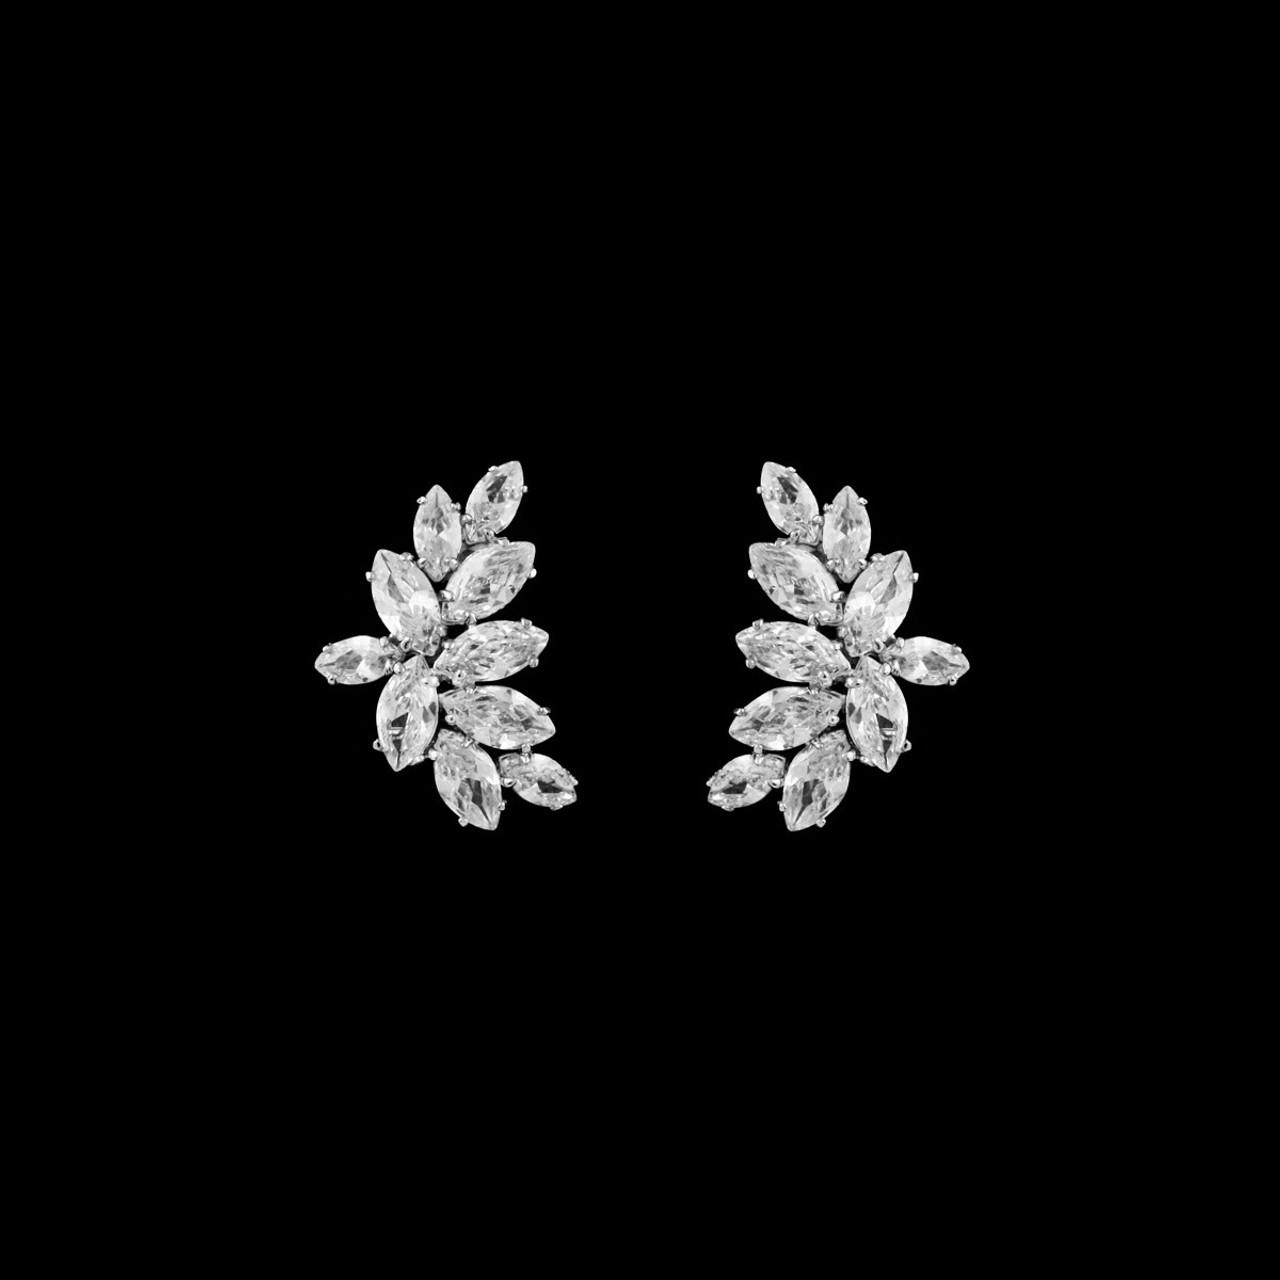 French Clip-on CZ Earrings Earrings for Bridesmaids and Brides - #252